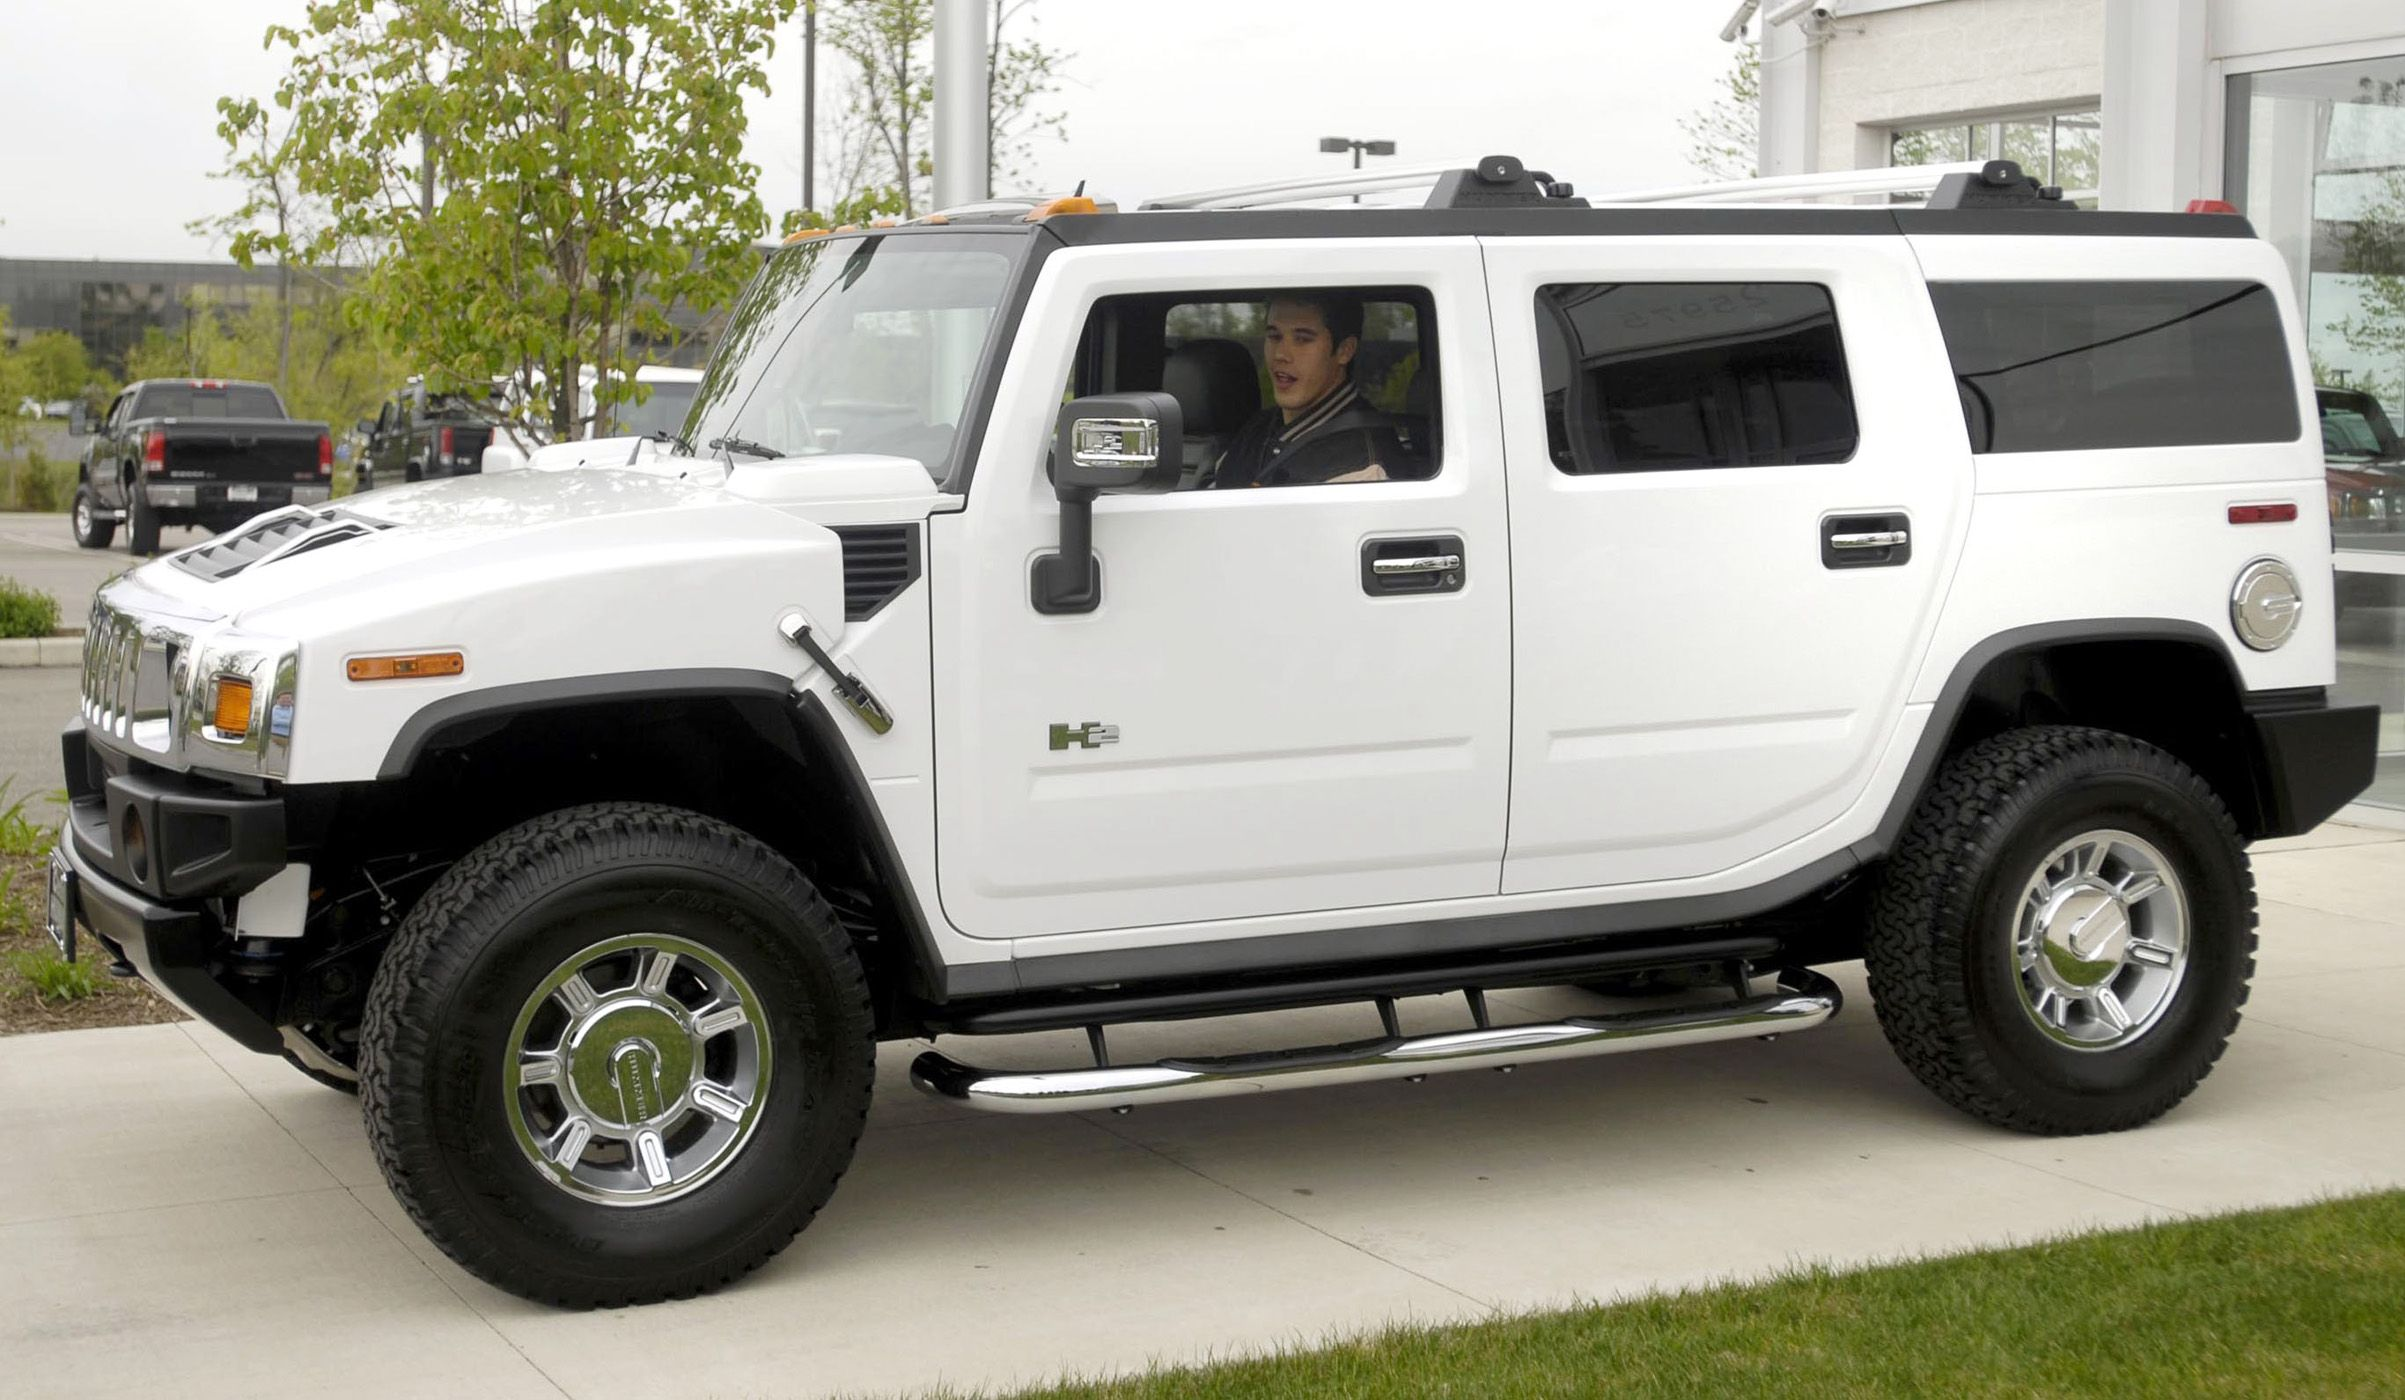 Hummer Cars 2017 2016 Reviews Photos Video Specs Price Part